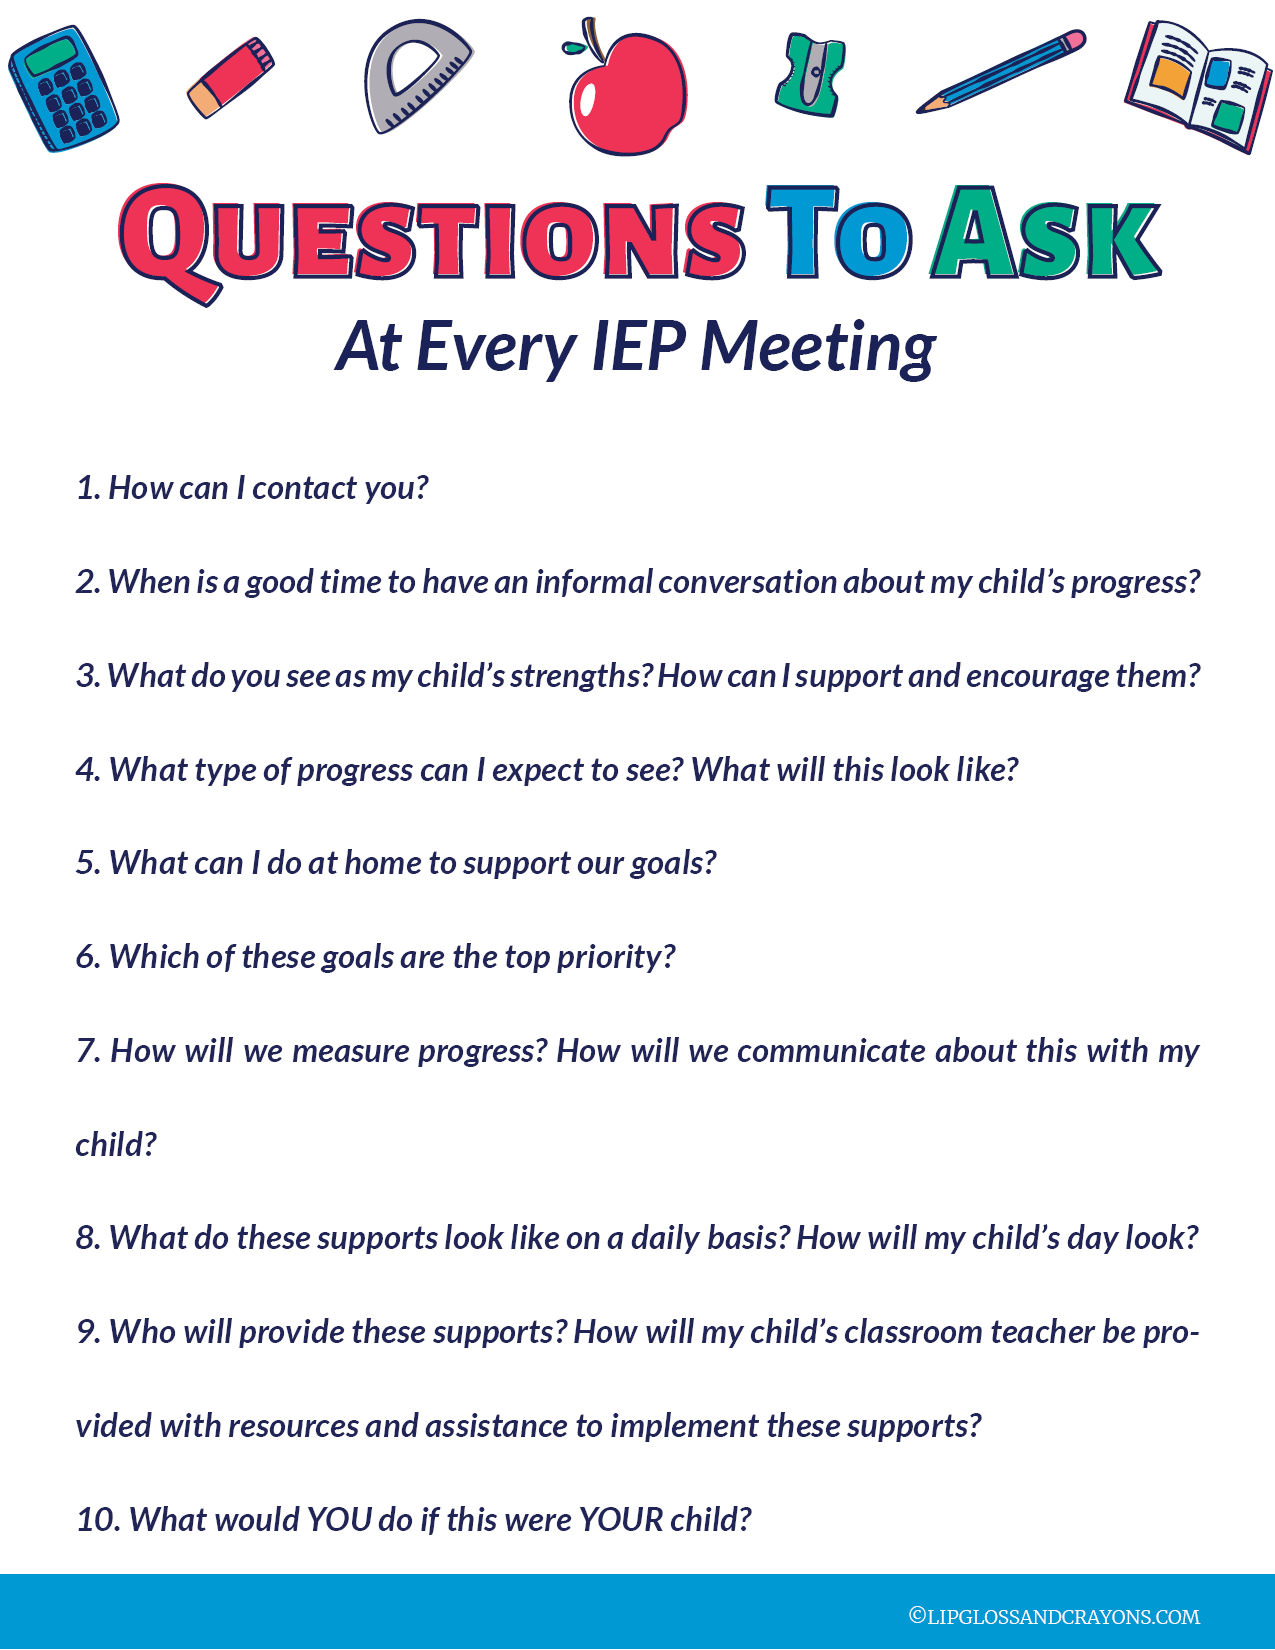 IEP Meeting: 10 Questions Every Parent Should Ask